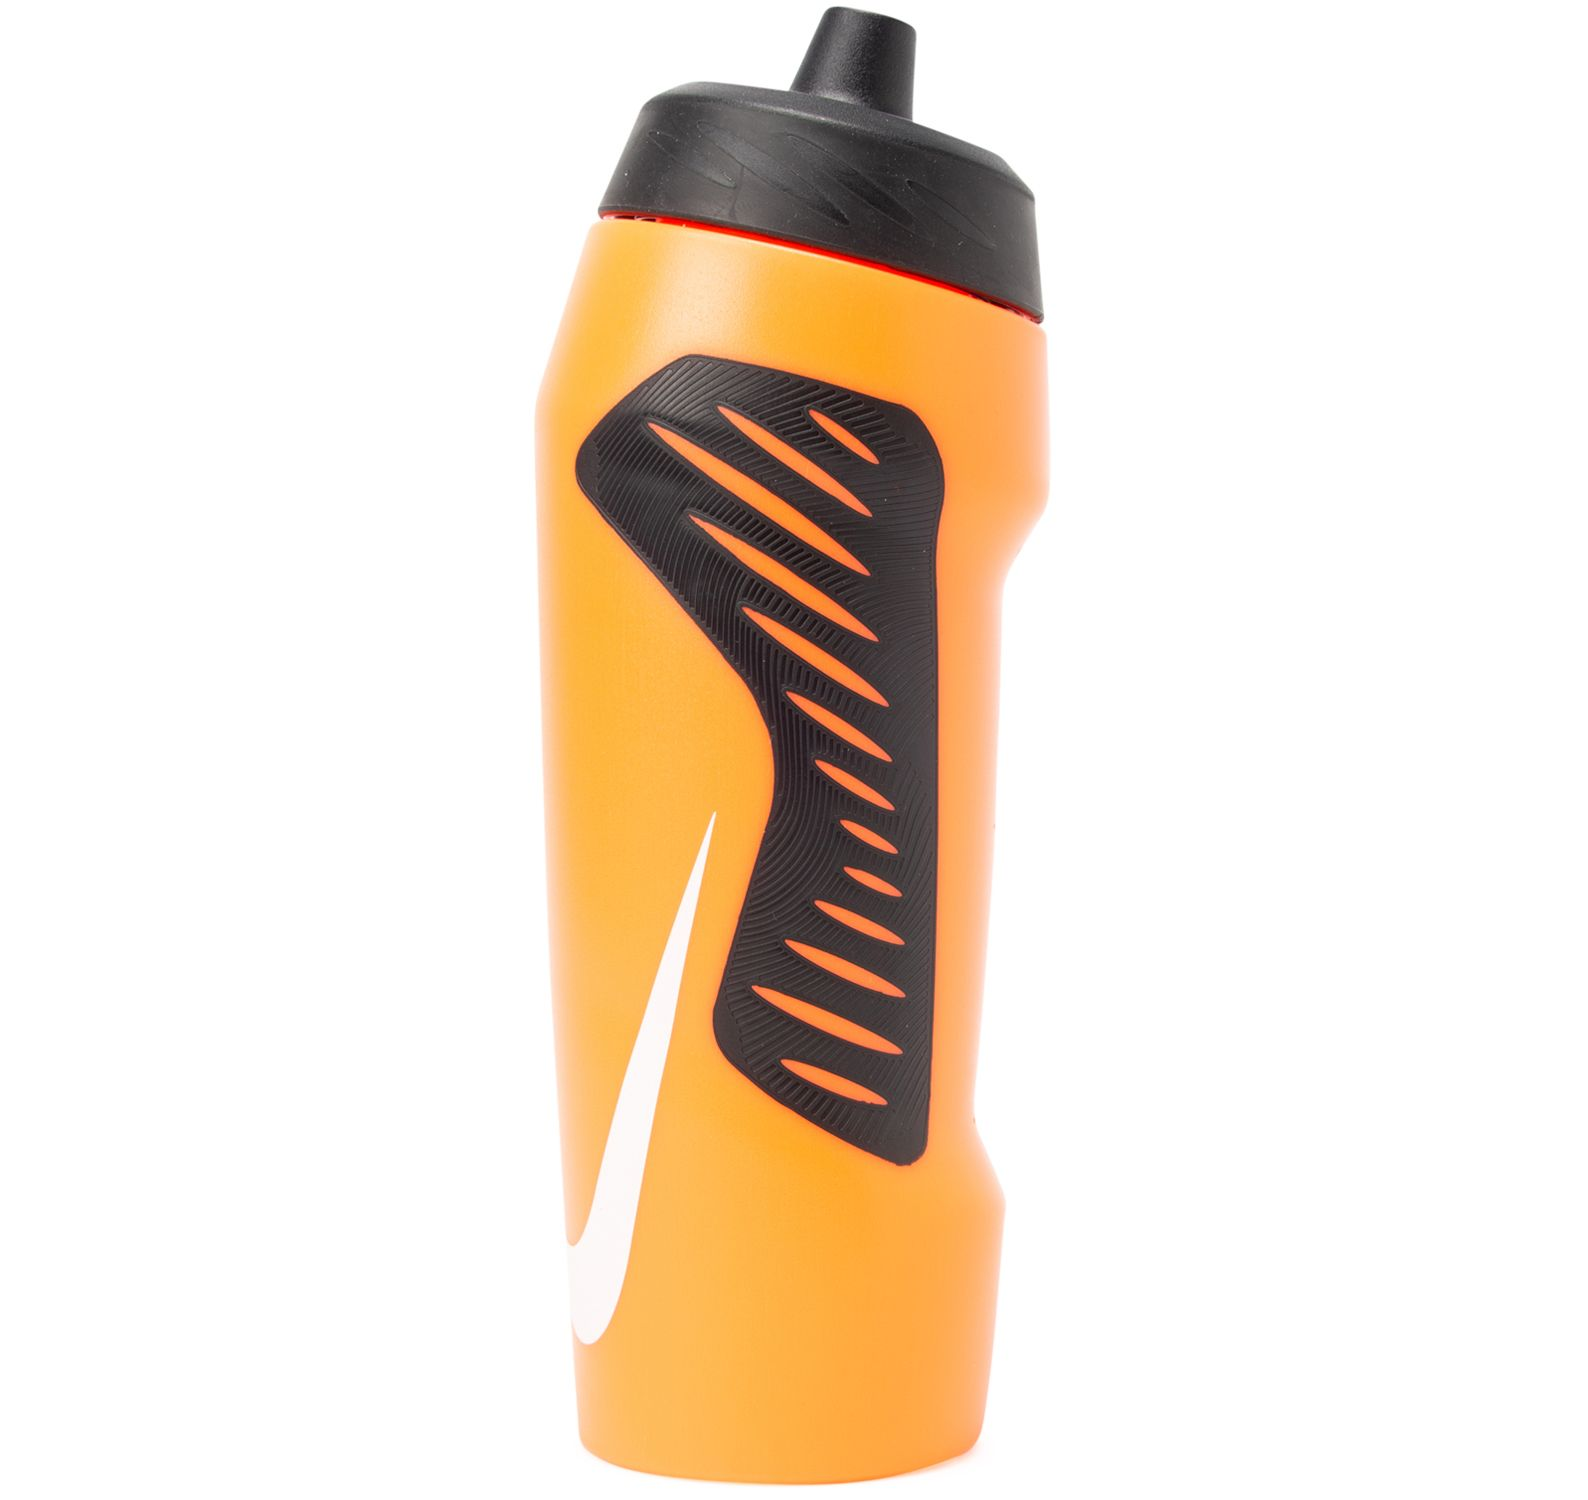 Nike Hyperfuel Bottle 24 Oz, Total Orange/Black/Black/White, Onesize, Nike